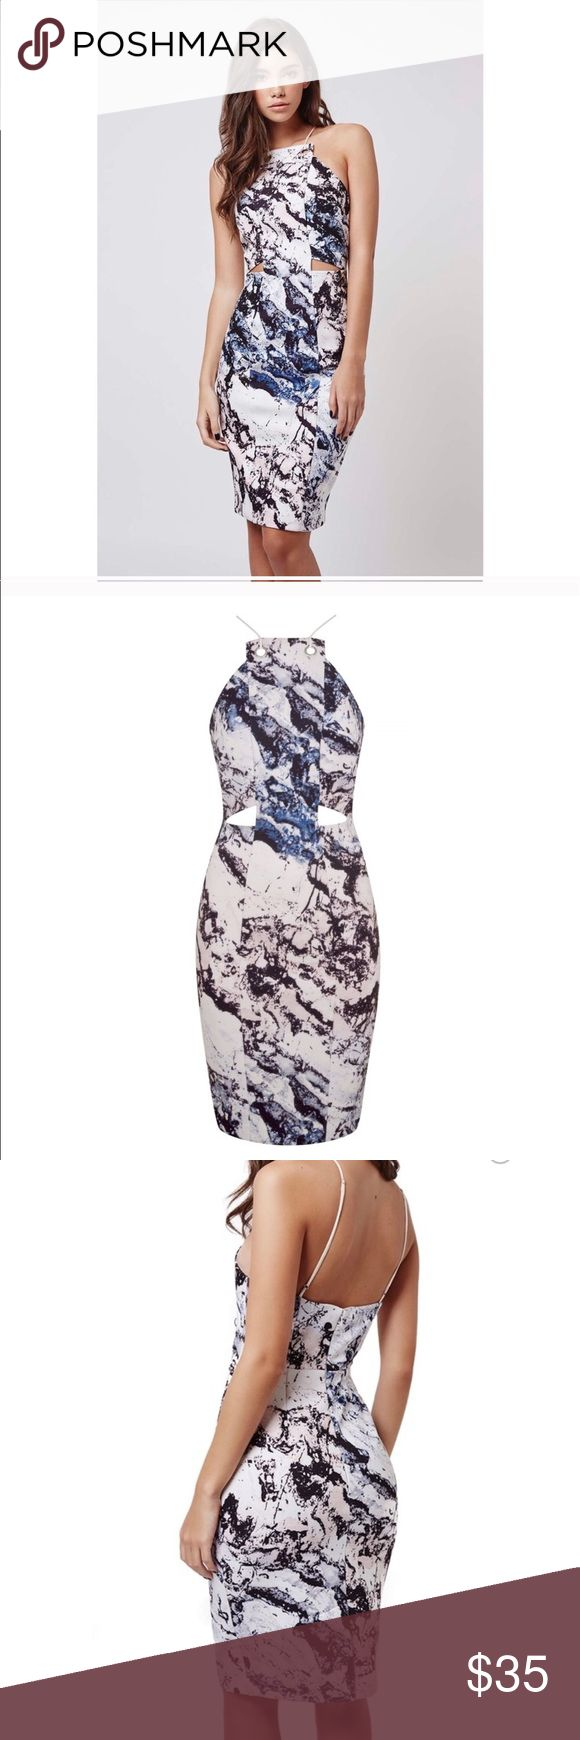 LATE NIGHT SALE😍KENDALL & KYLIE FOR TOPSHOP😍 SOLD OUT EVERYWHERE Kendall & Kylie for topshop abstract watercolor dress. this dress has a high neckline with cutouts around the stomach. Size 10 Kendall & Kylie Dresses